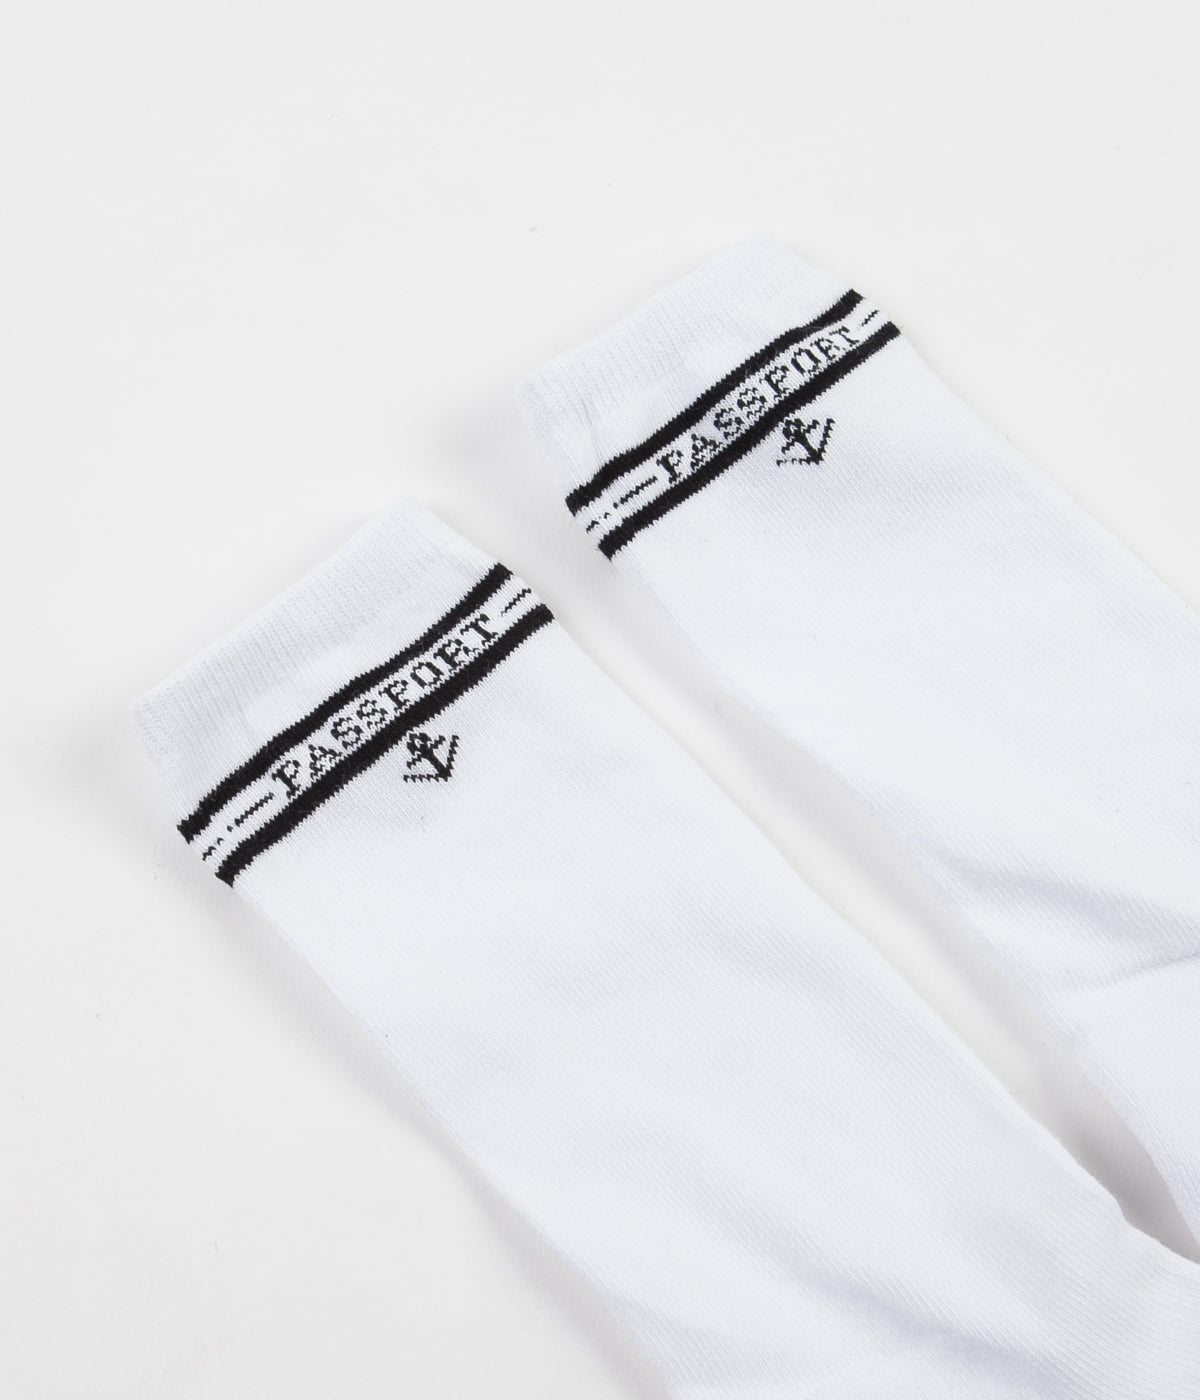 Pass Port Hi Sox 5 Pack - White